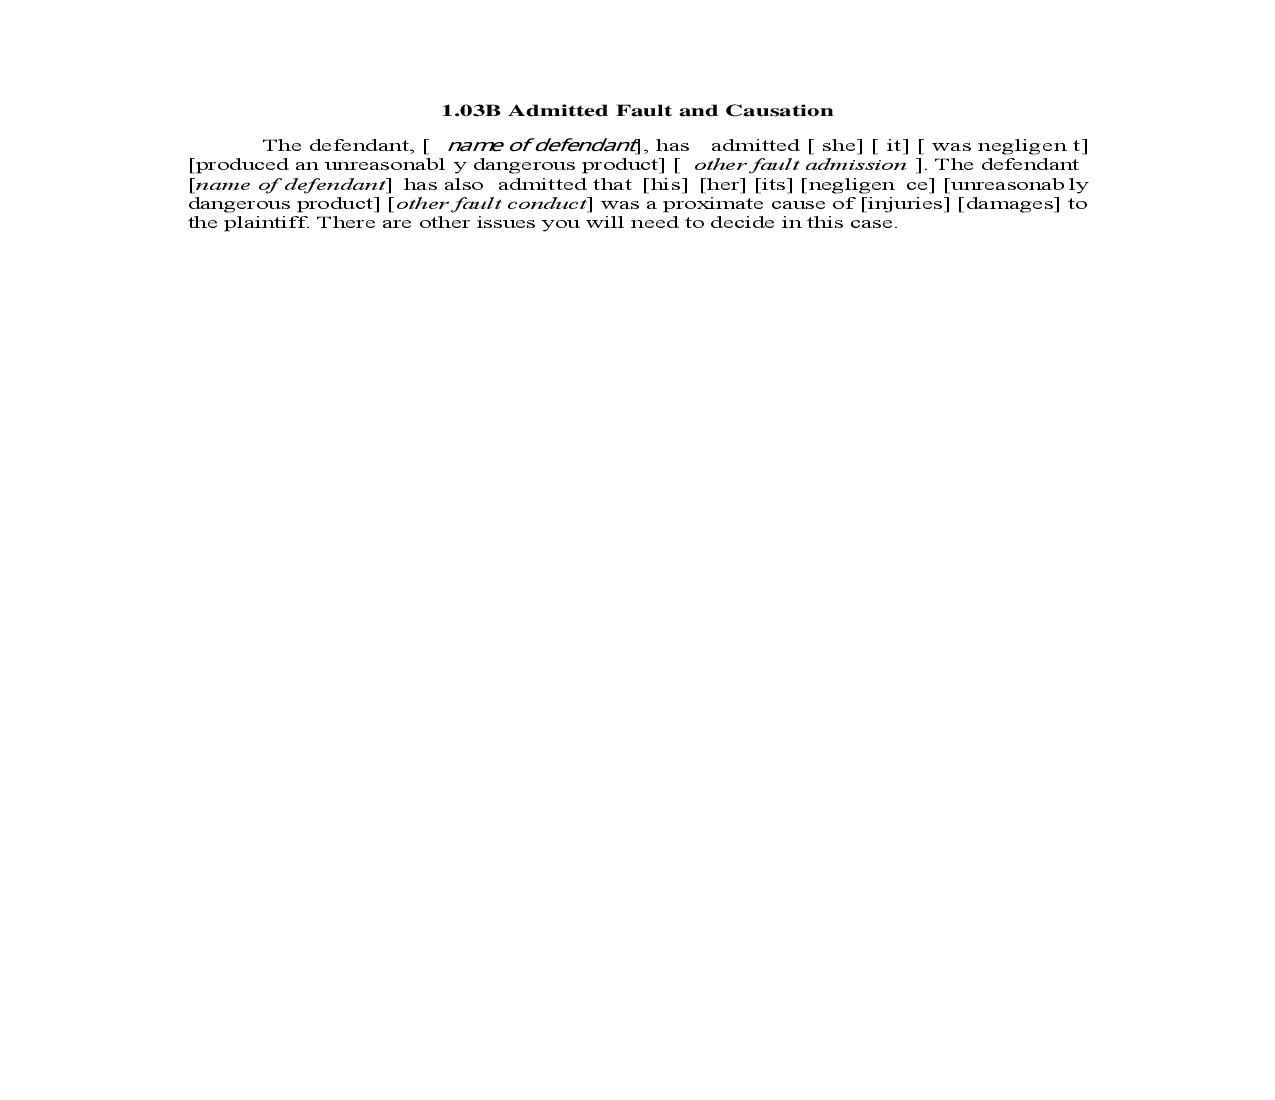 1.03B. Admitted Fault and Causation | Pdf Doc Docx | Illinois_JI